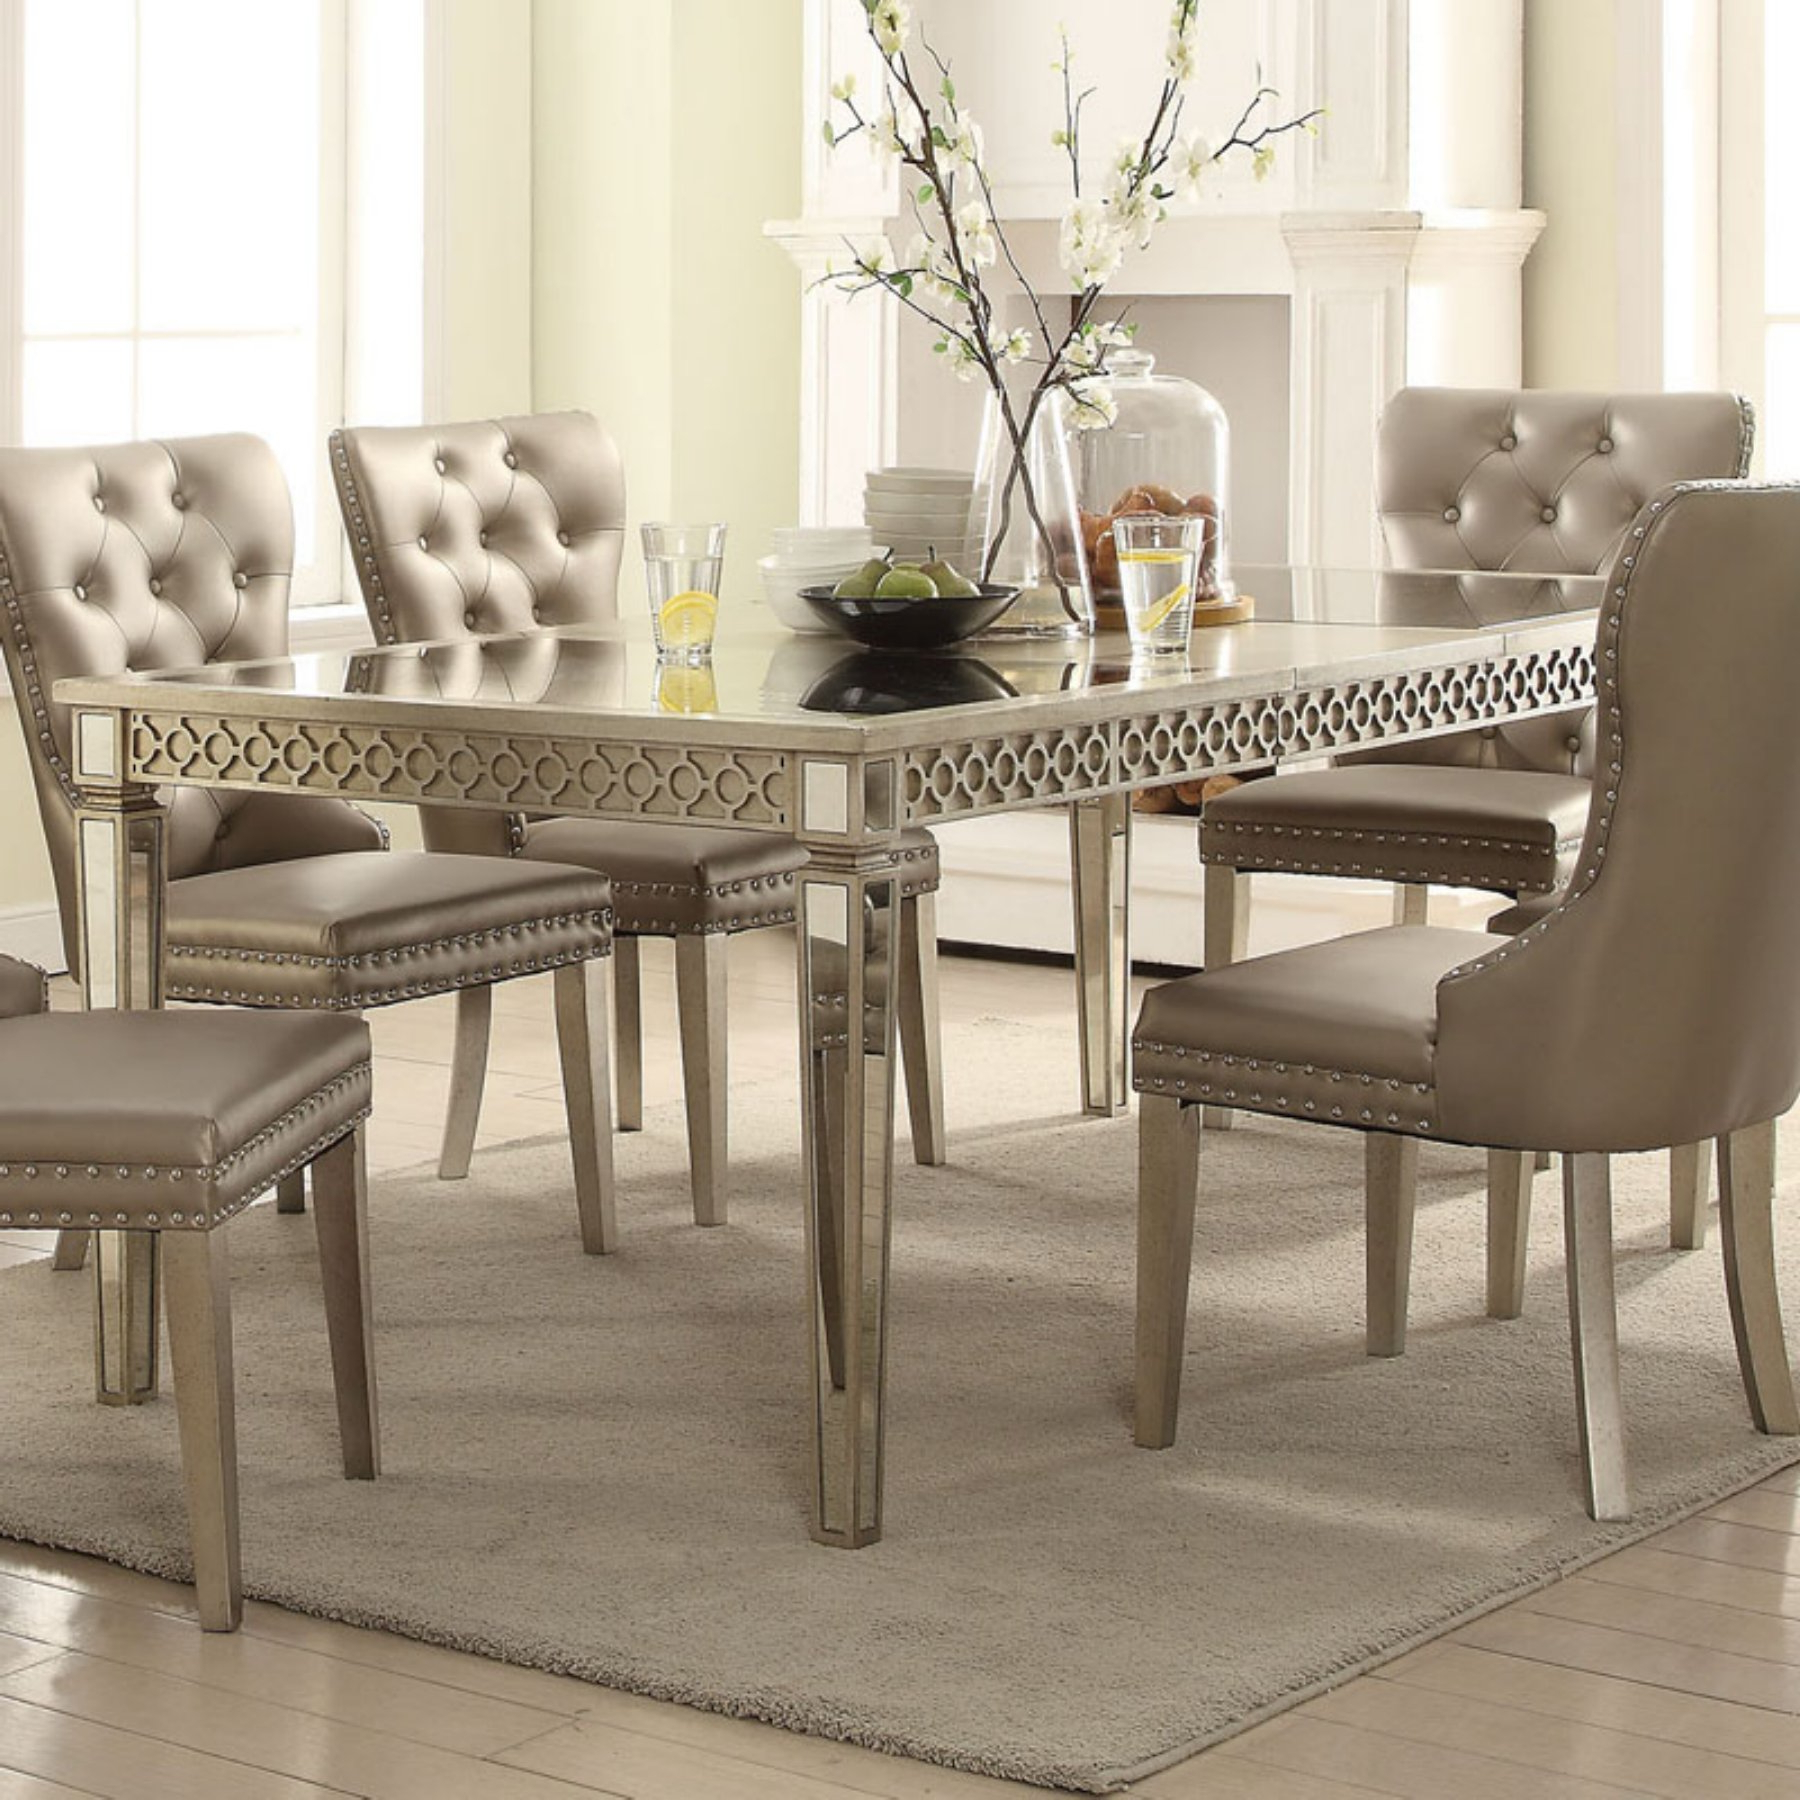 Lamotte 5 Piece Dining Sets For Well Liked Acme Furniture Kacela Extension Dining Table (View 12 of 25)